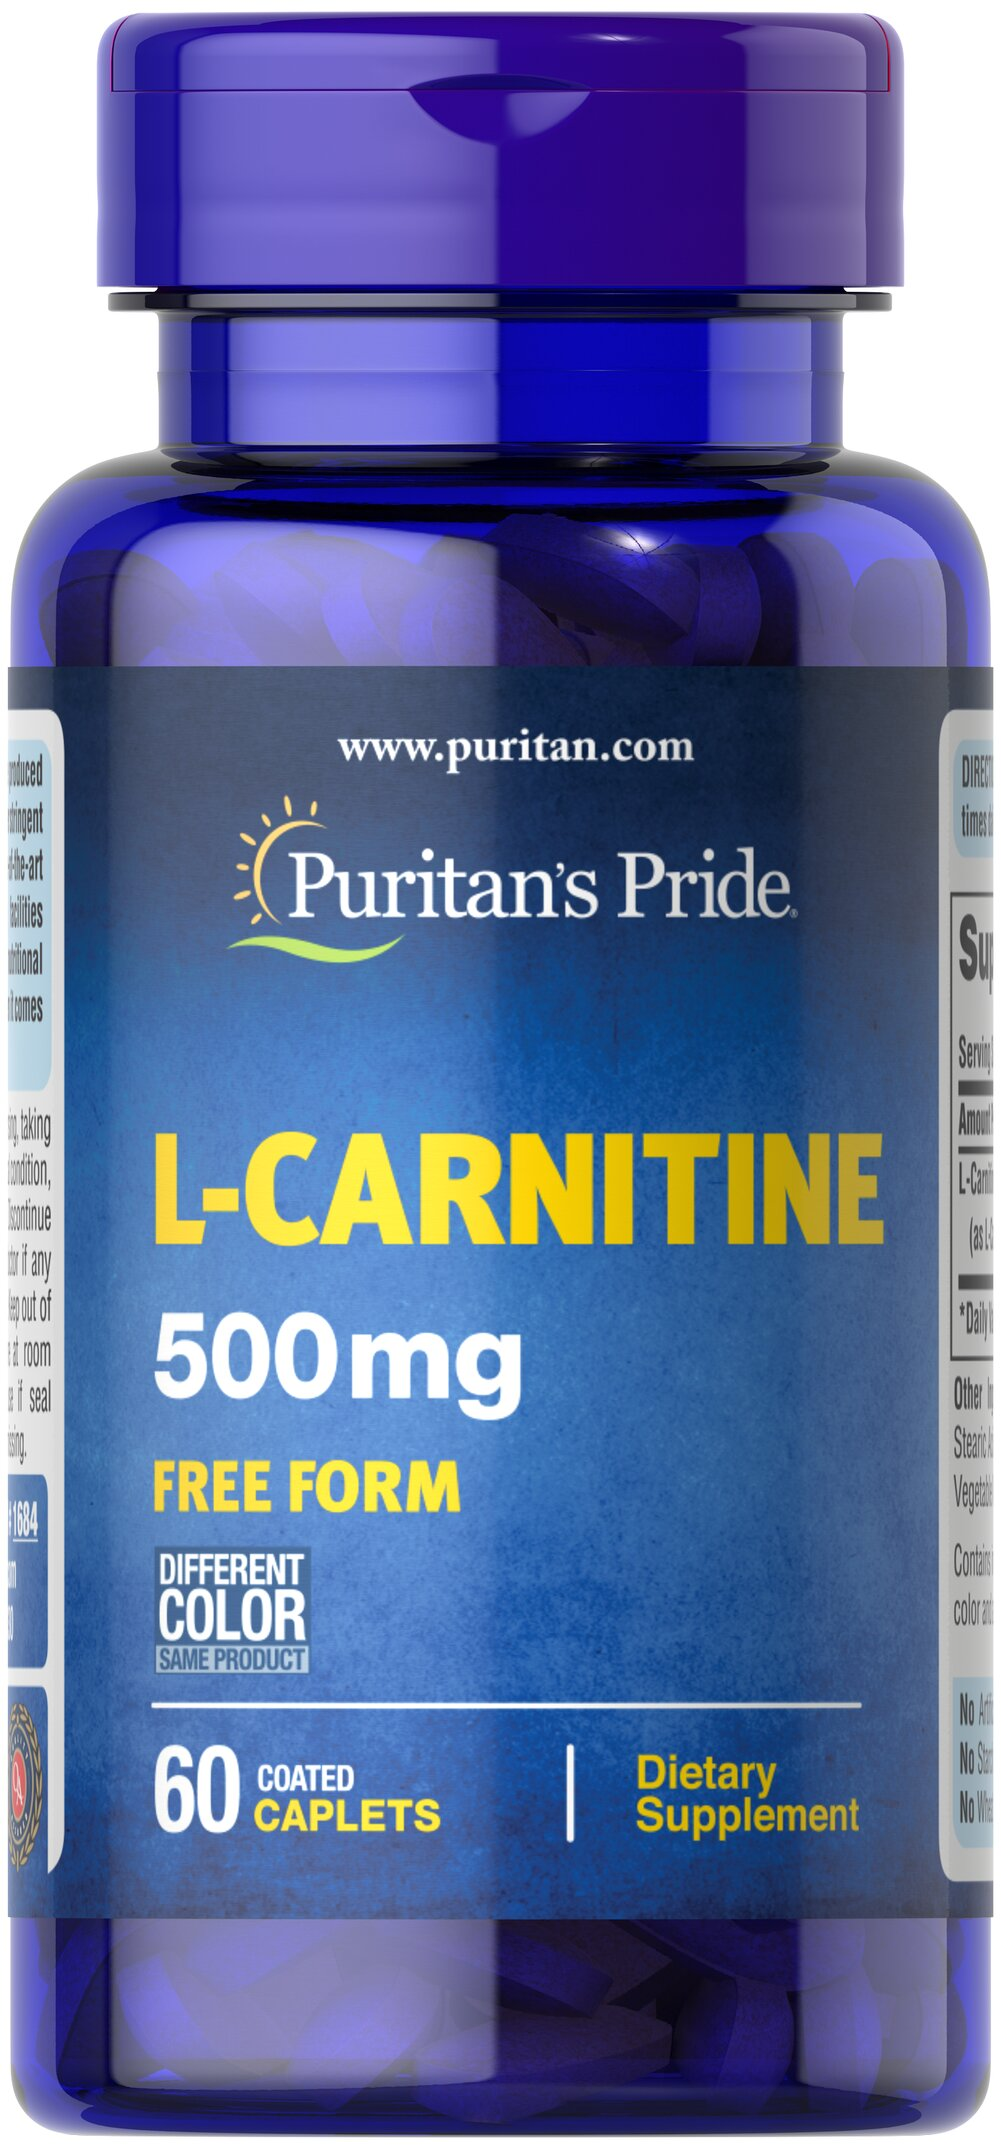 L-Carnitine 500 mg  60 Caplets 500 mg $8.99